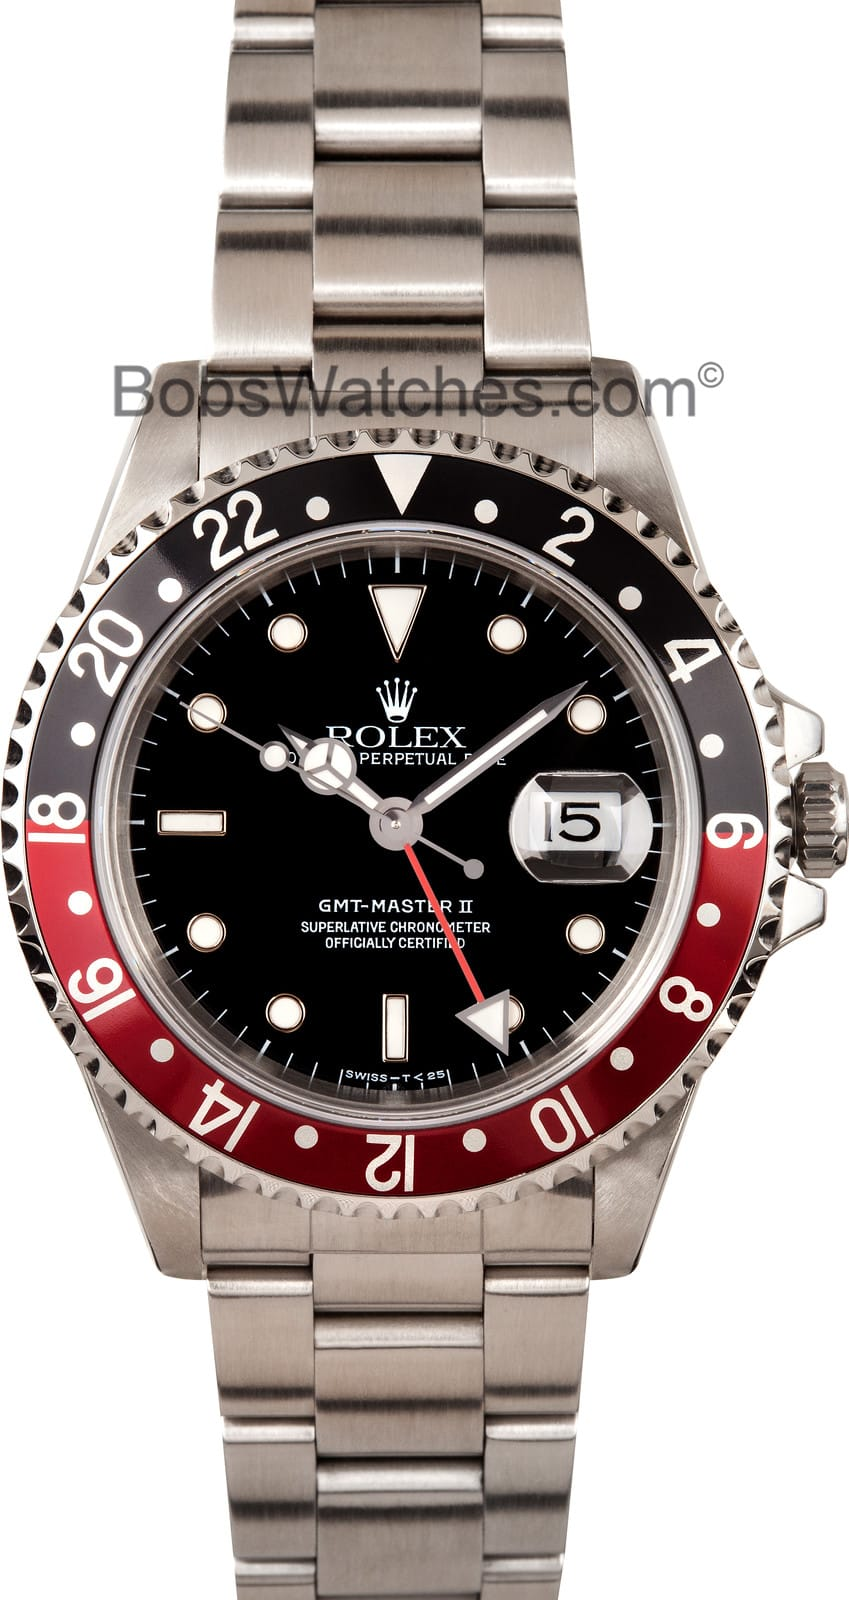 Used Breitling Watches >> Rolex GMT-Master II Coke Bezel Steel 16710 - Bob's Watches